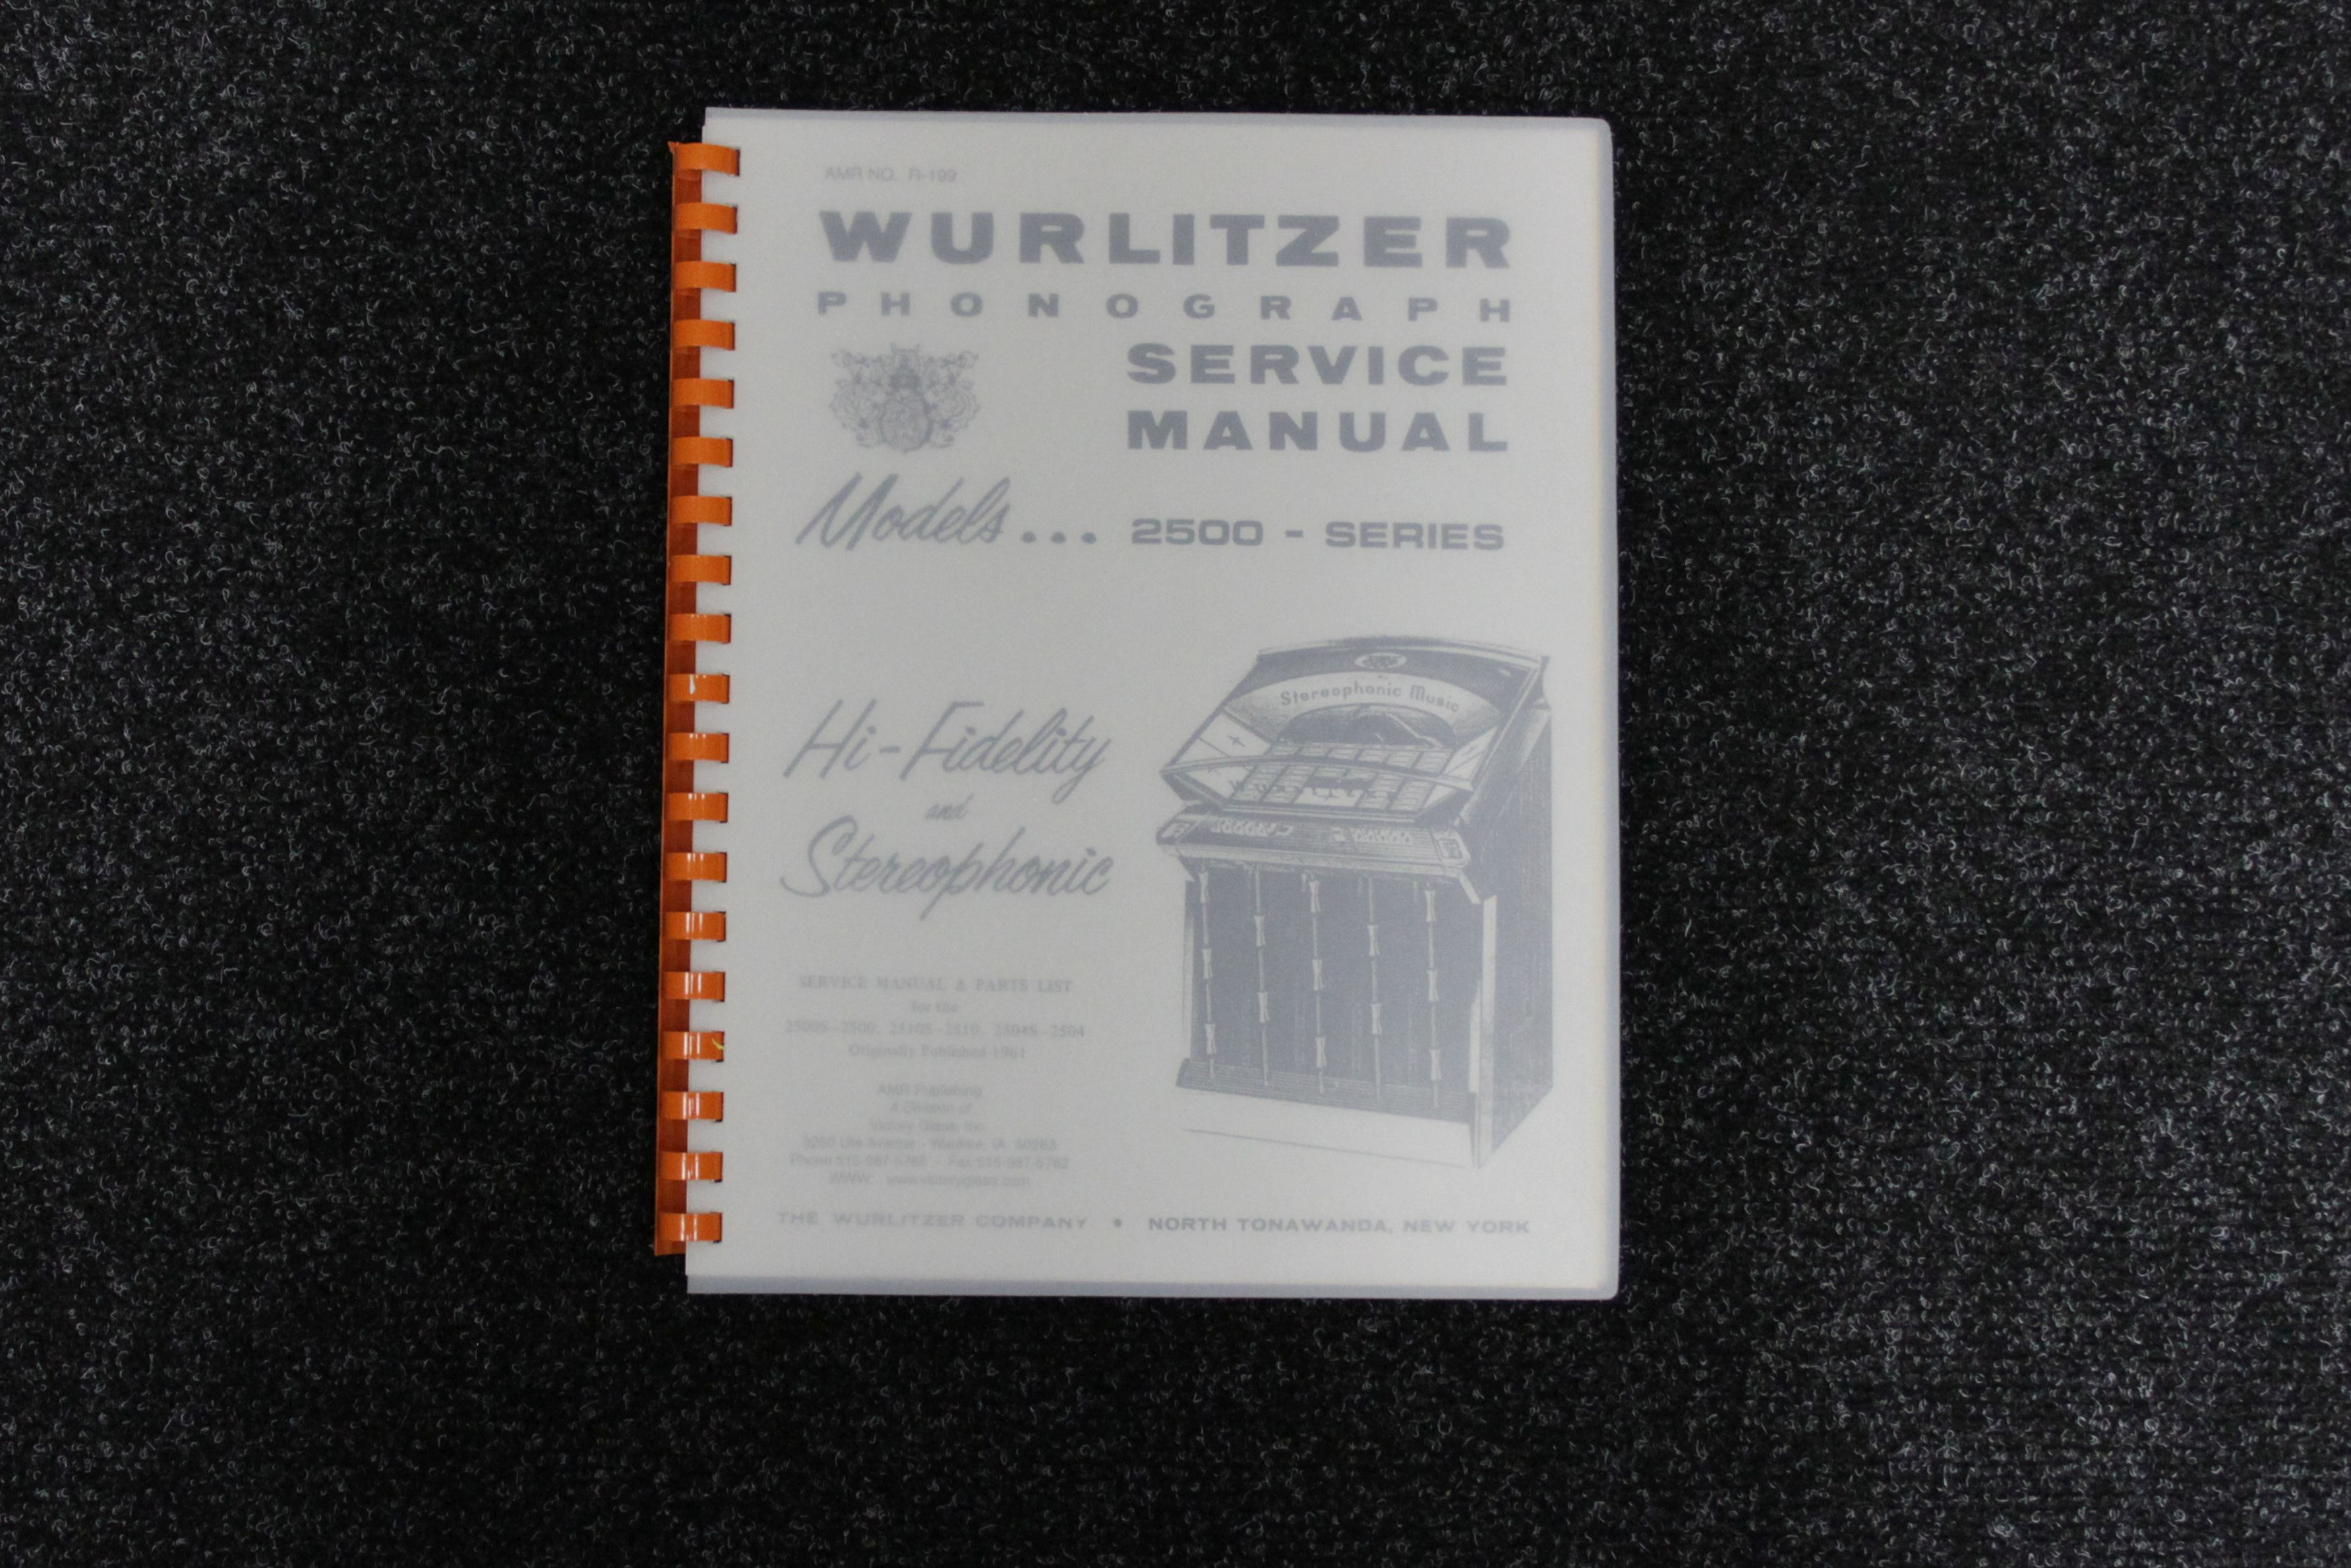 Wurlitzer Service Manual 2500 series